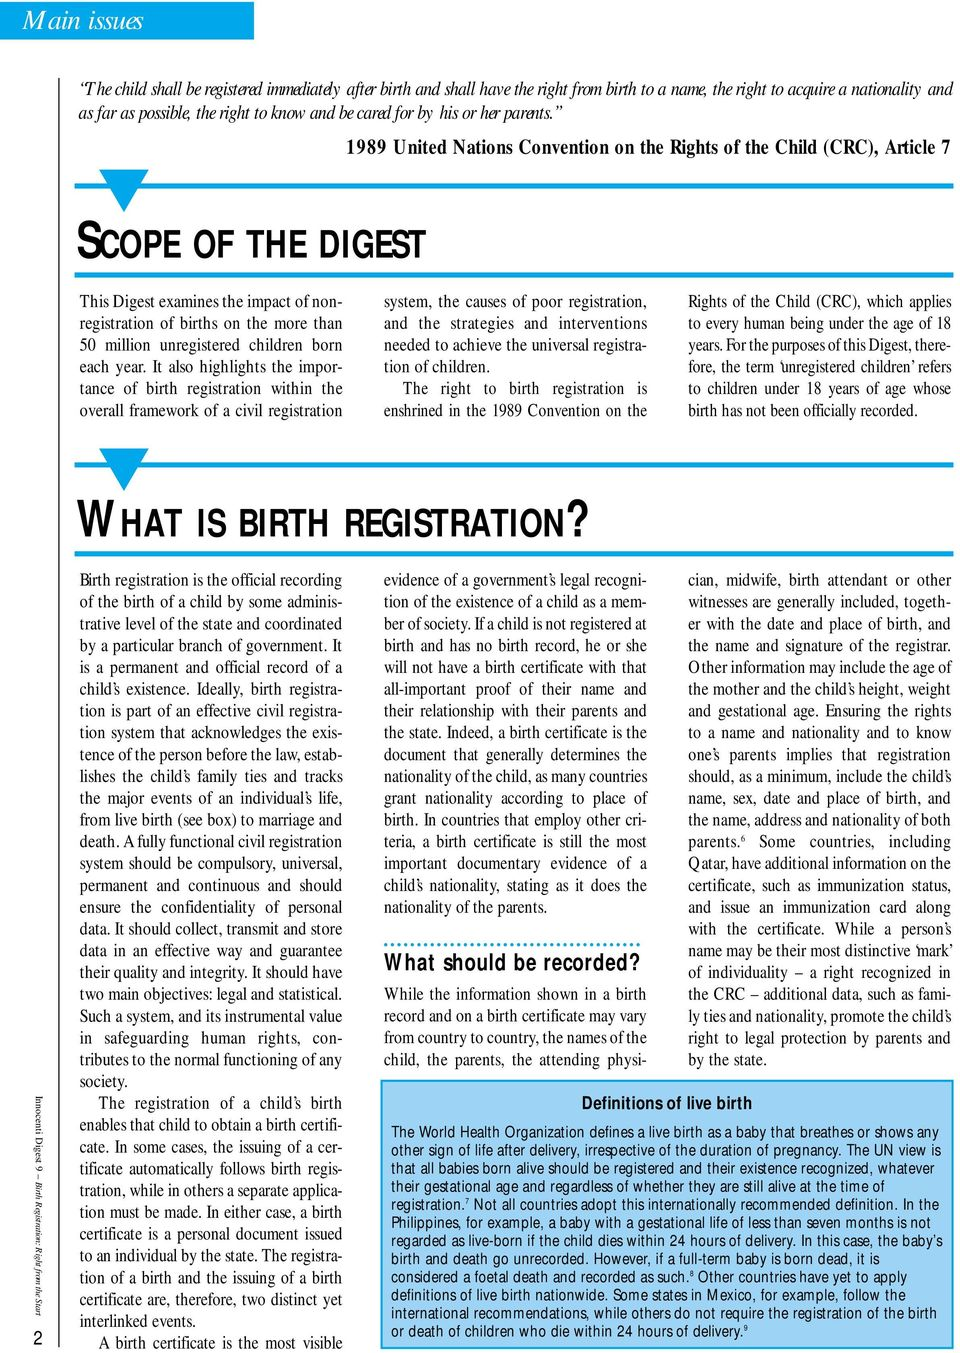 SCOPE OF THE DIGEST 1989 United Nations Convention on the Rights of the Child (CRC), Article 7 This Digest examines the impact of nonregistration of births on the more than 50 million unregistered